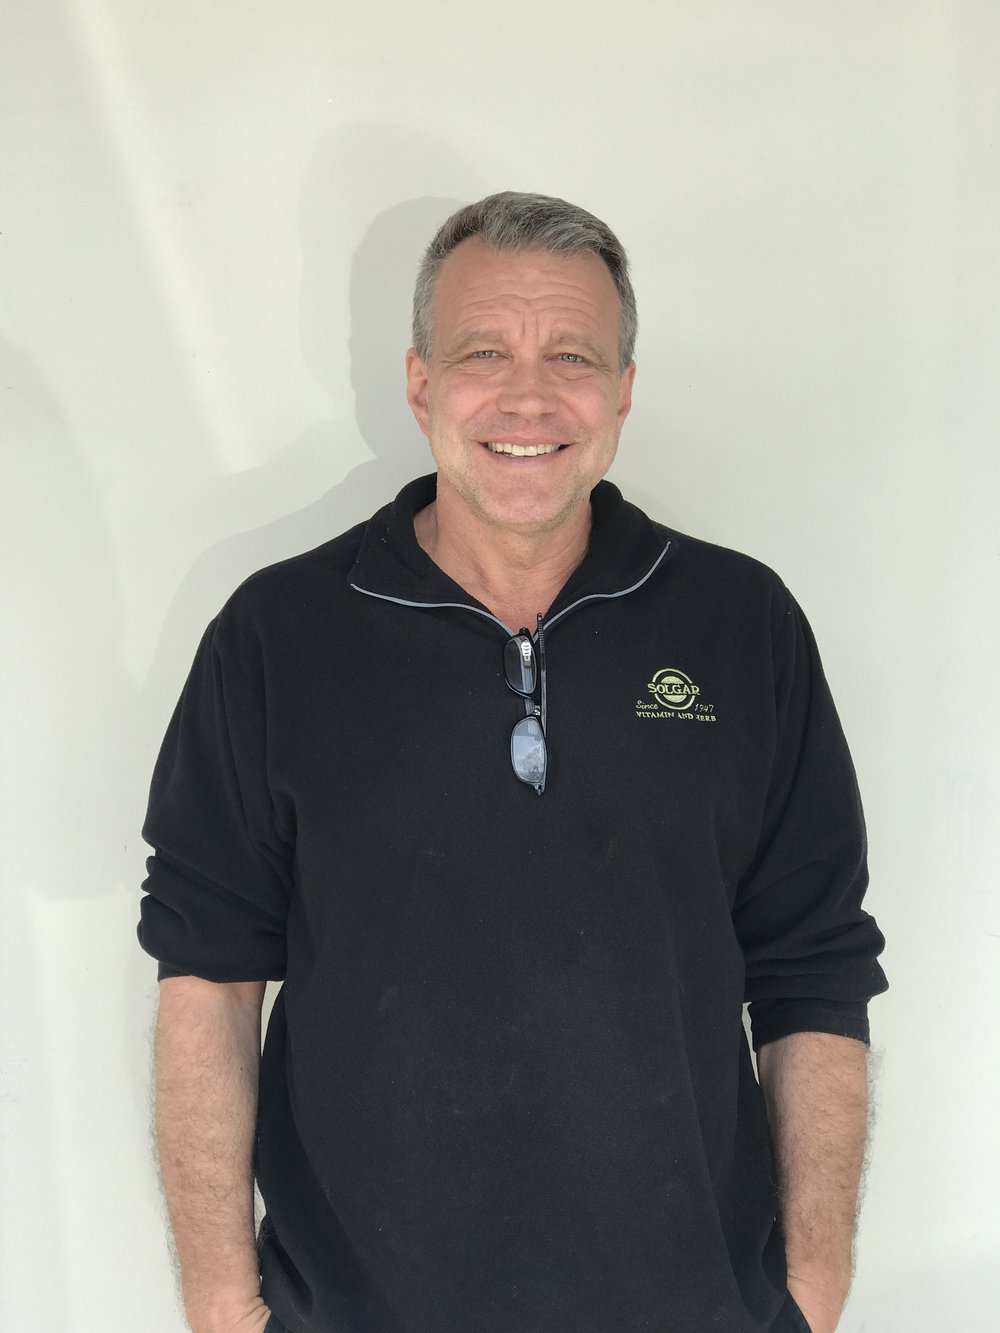 JOE  Joe has worked at the Vitamin Barn for 26 years with experience in the health industry for 20 years. He enjoys the positive work environment and learning more about health in general.